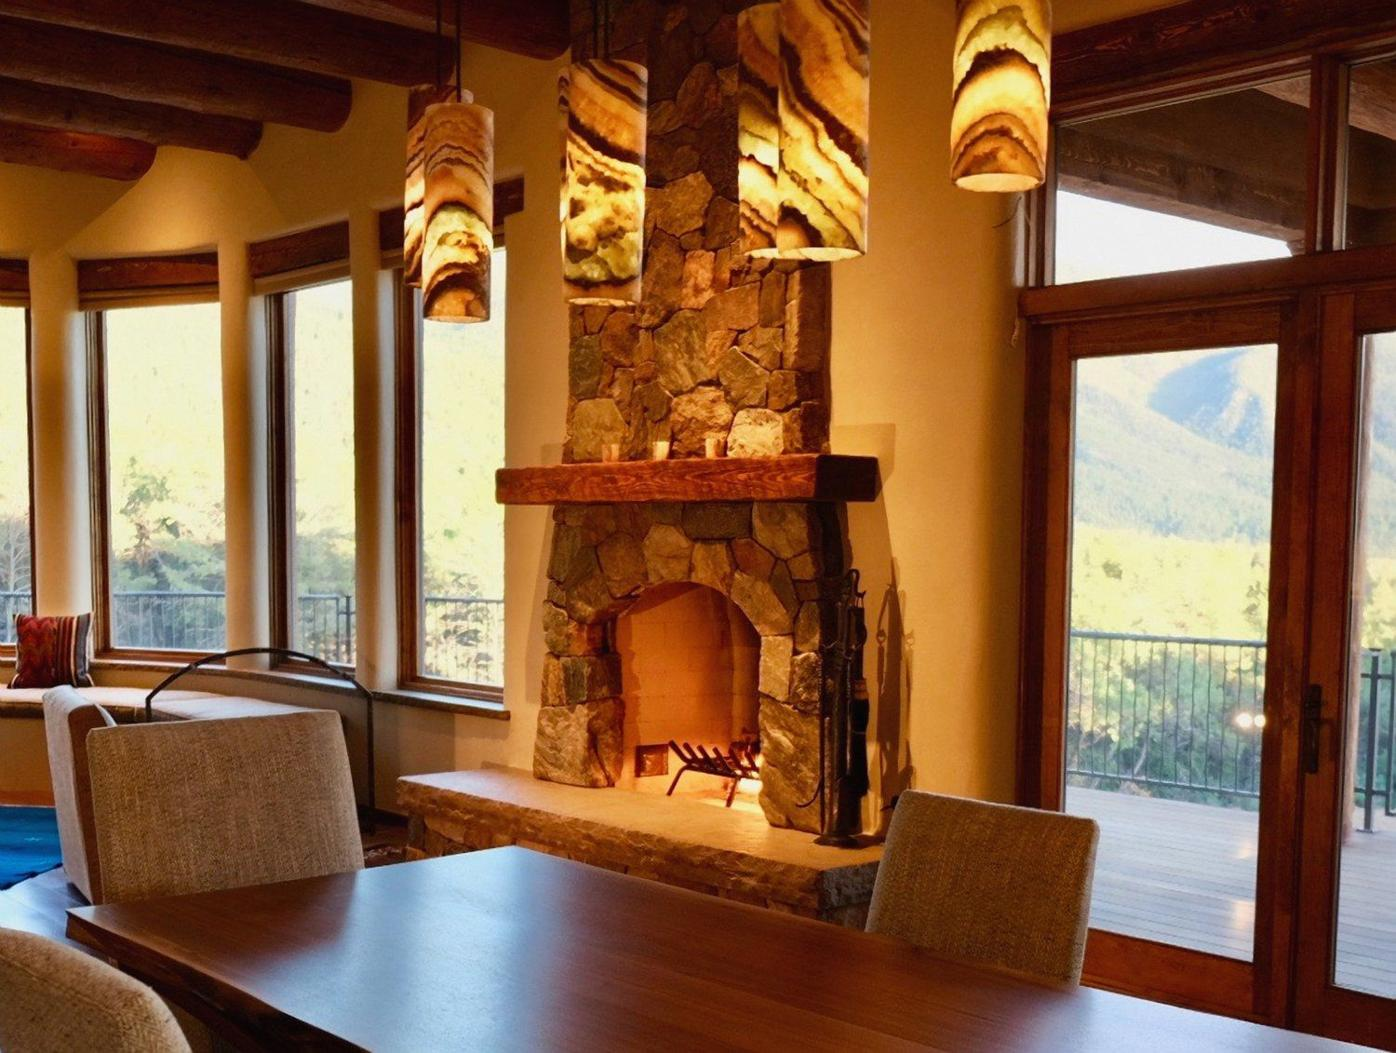 The Art of home Design: What's hot in fireplaces